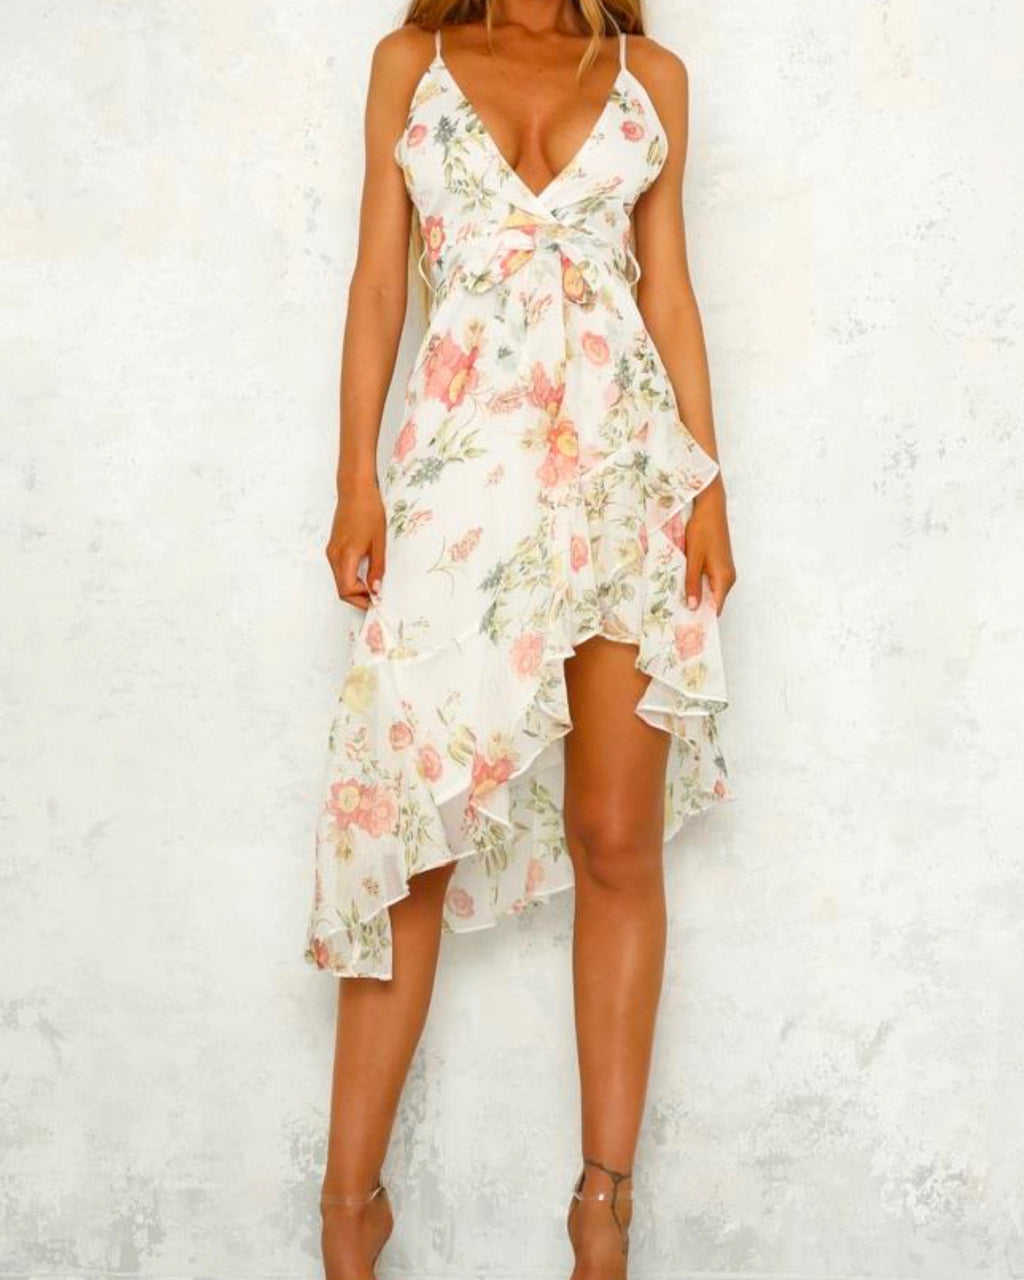 walking through my dreams floral dress - white